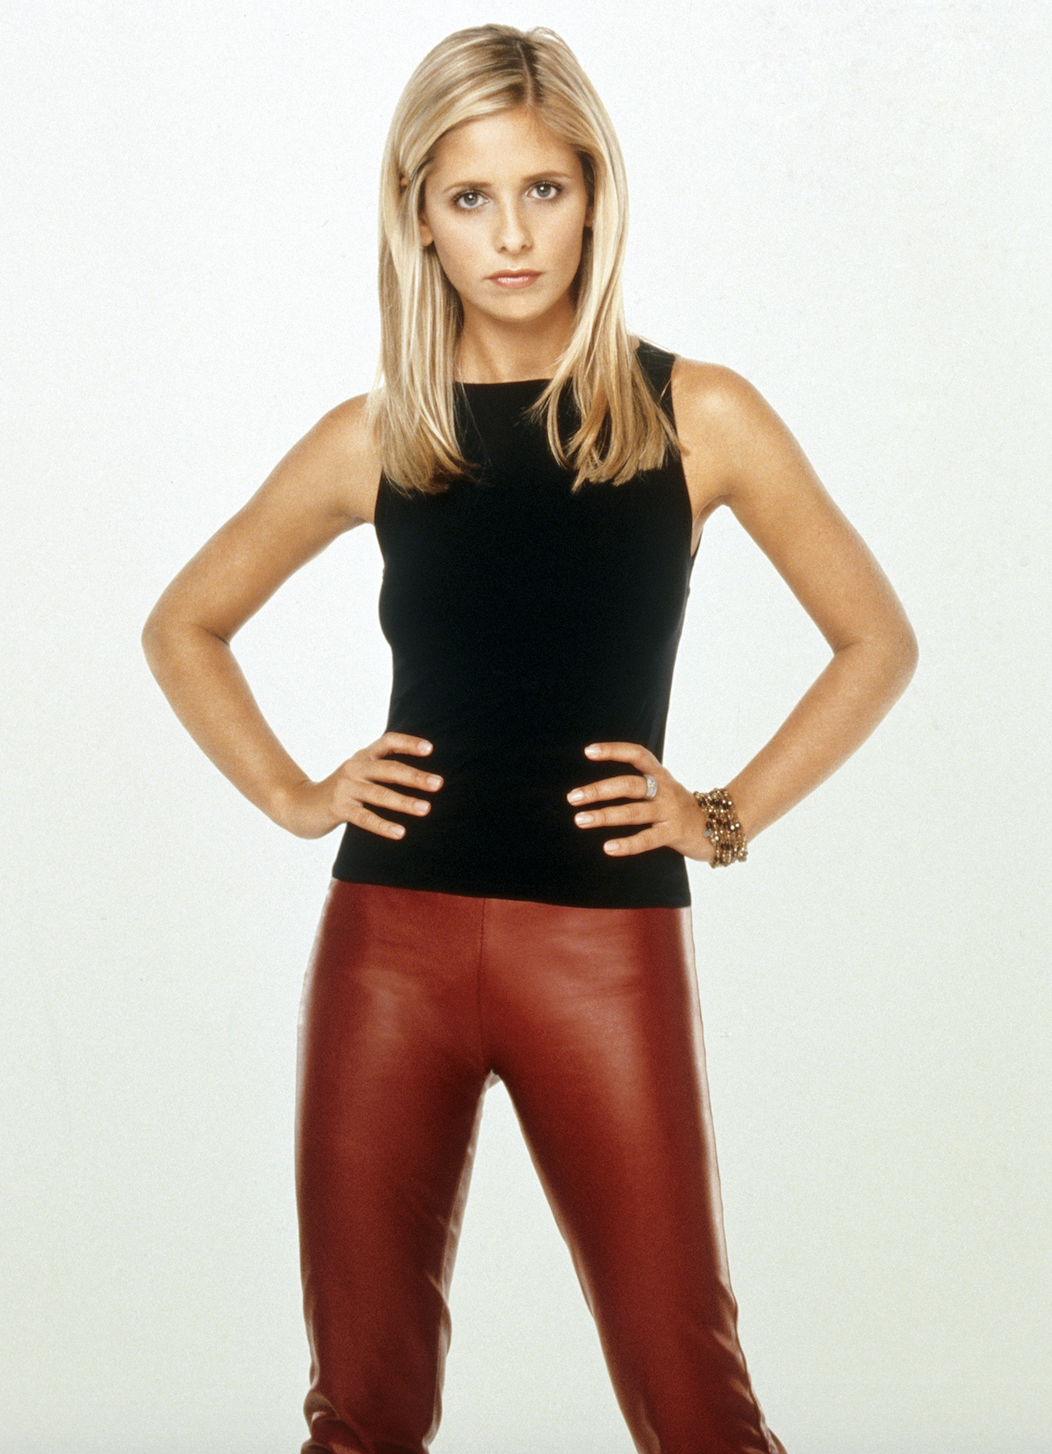 Buffy wearing a top with colorful leather pants